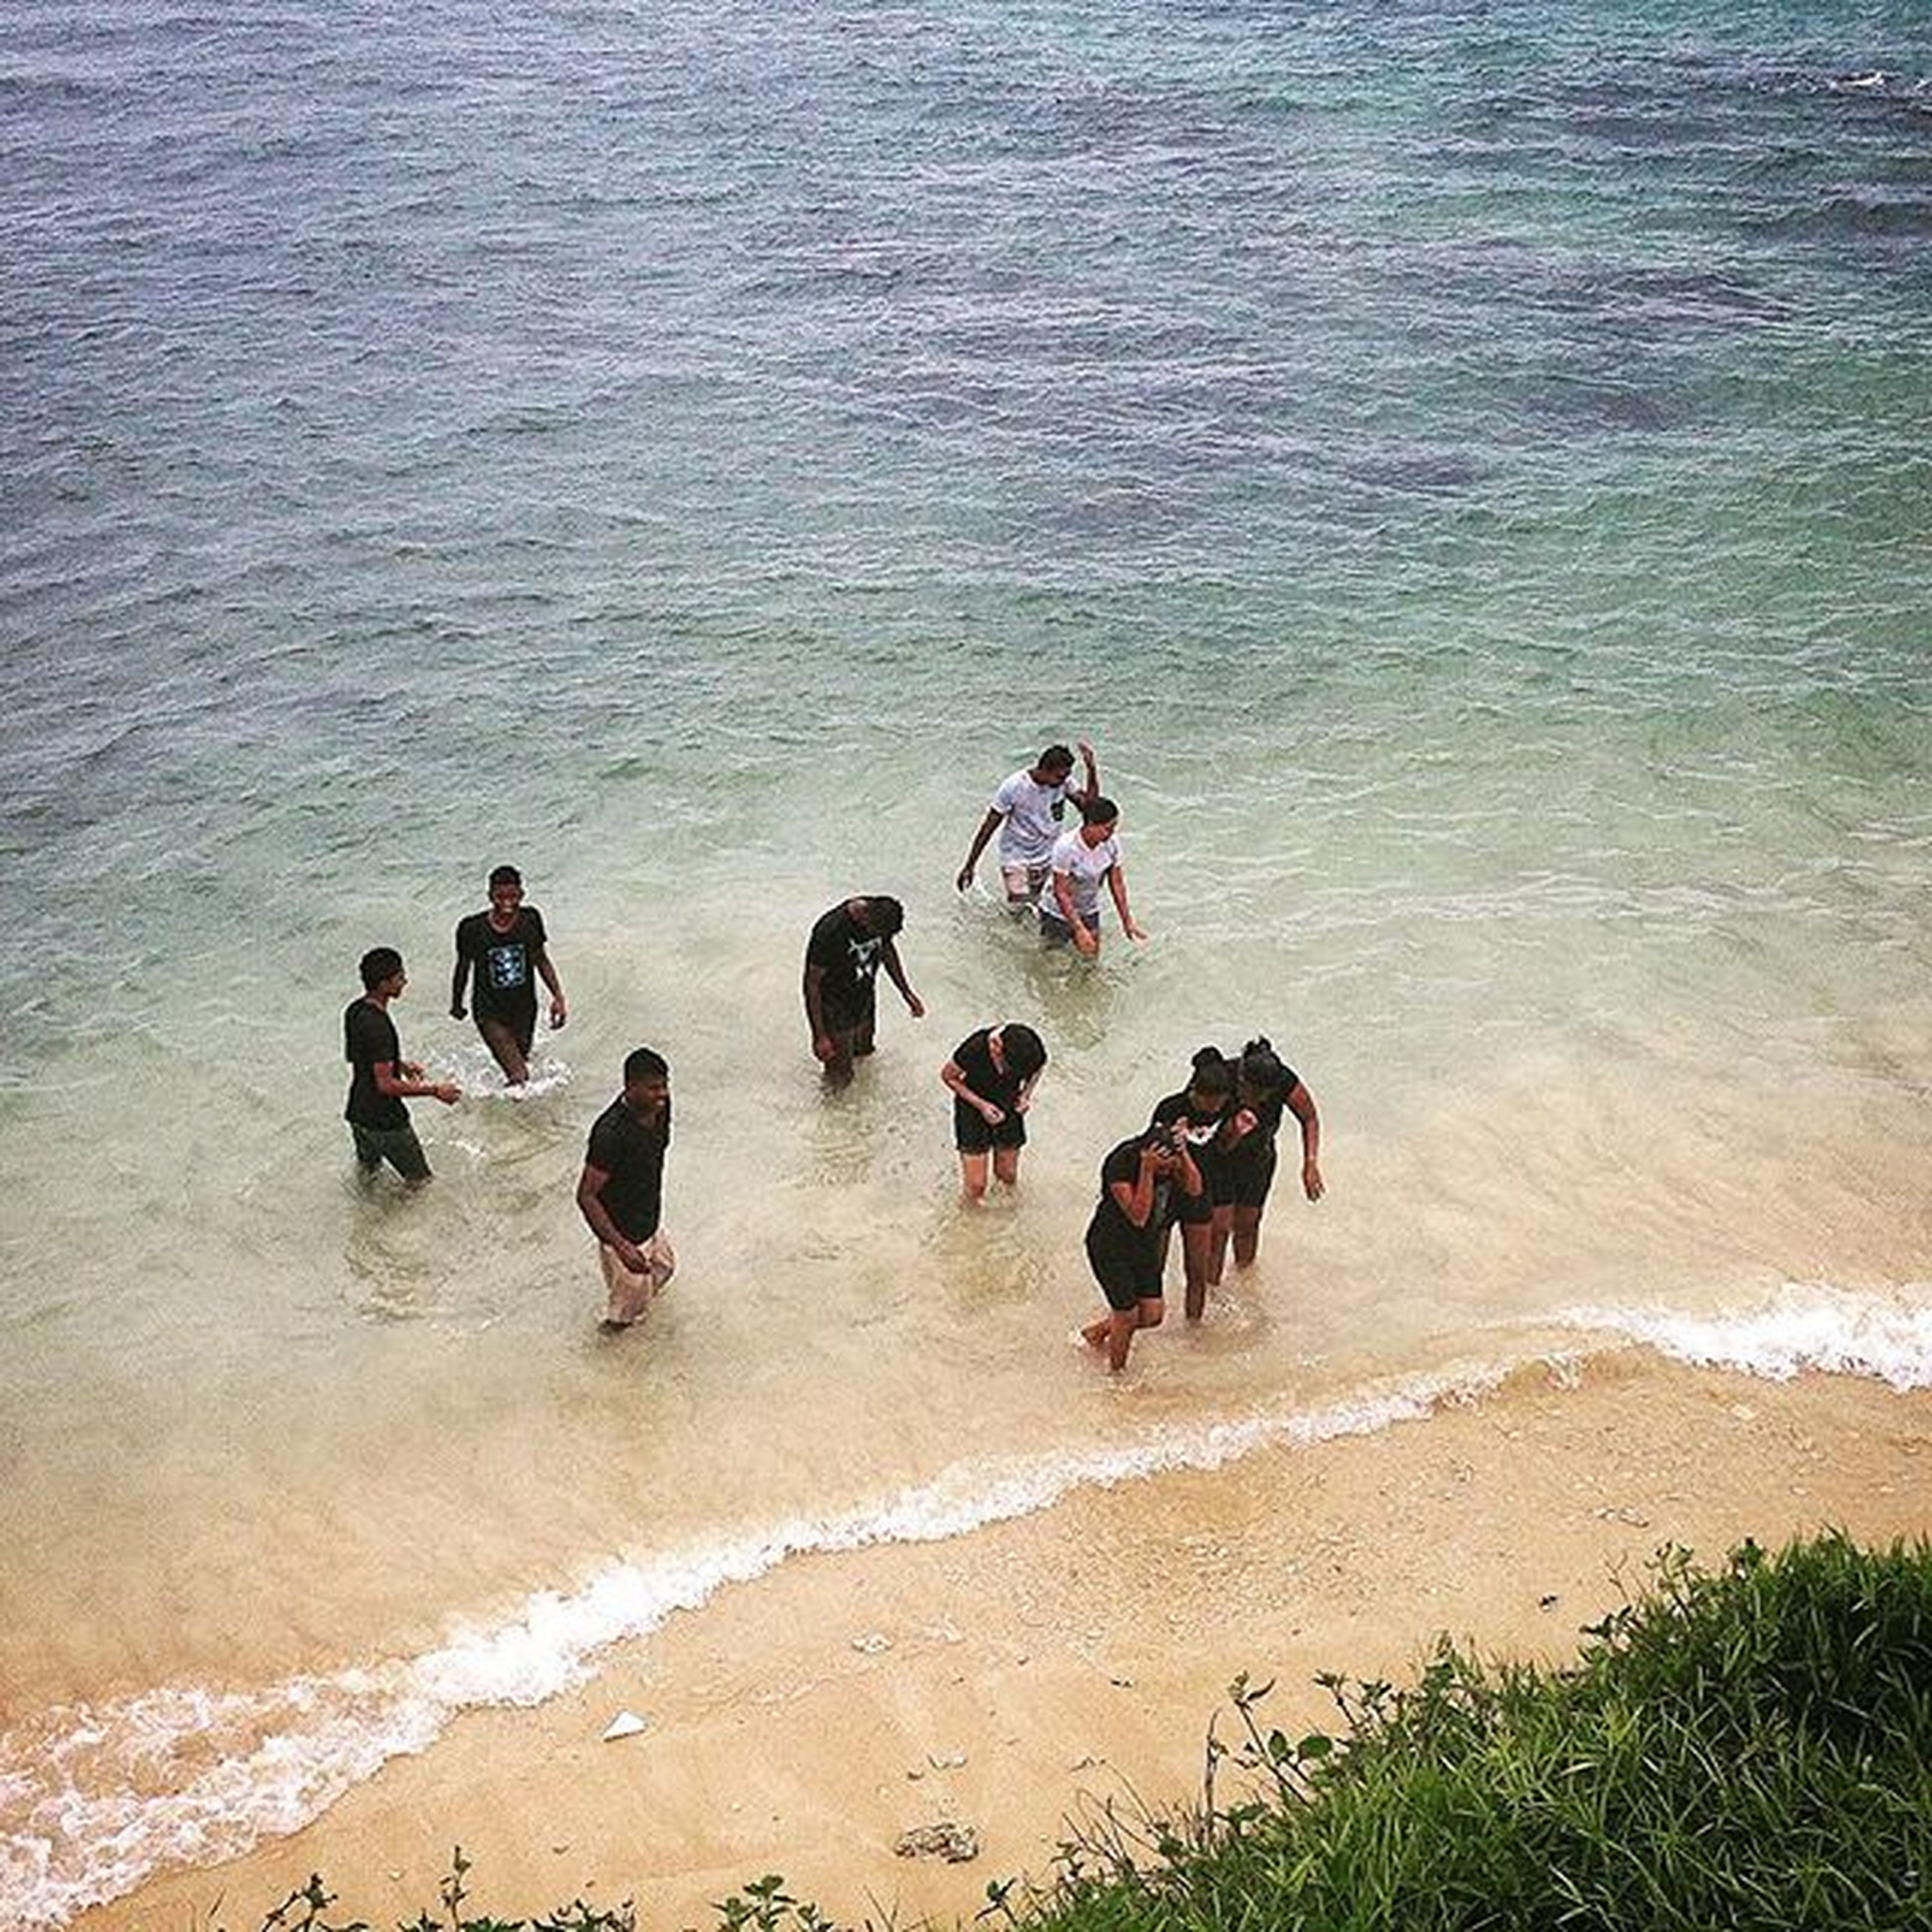 water, beach, sea, lifestyles, leisure activity, sand, vacations, men, shore, large group of people, enjoyment, high angle view, togetherness, person, nature, mixed age range, wave, medium group of people, weekend activities